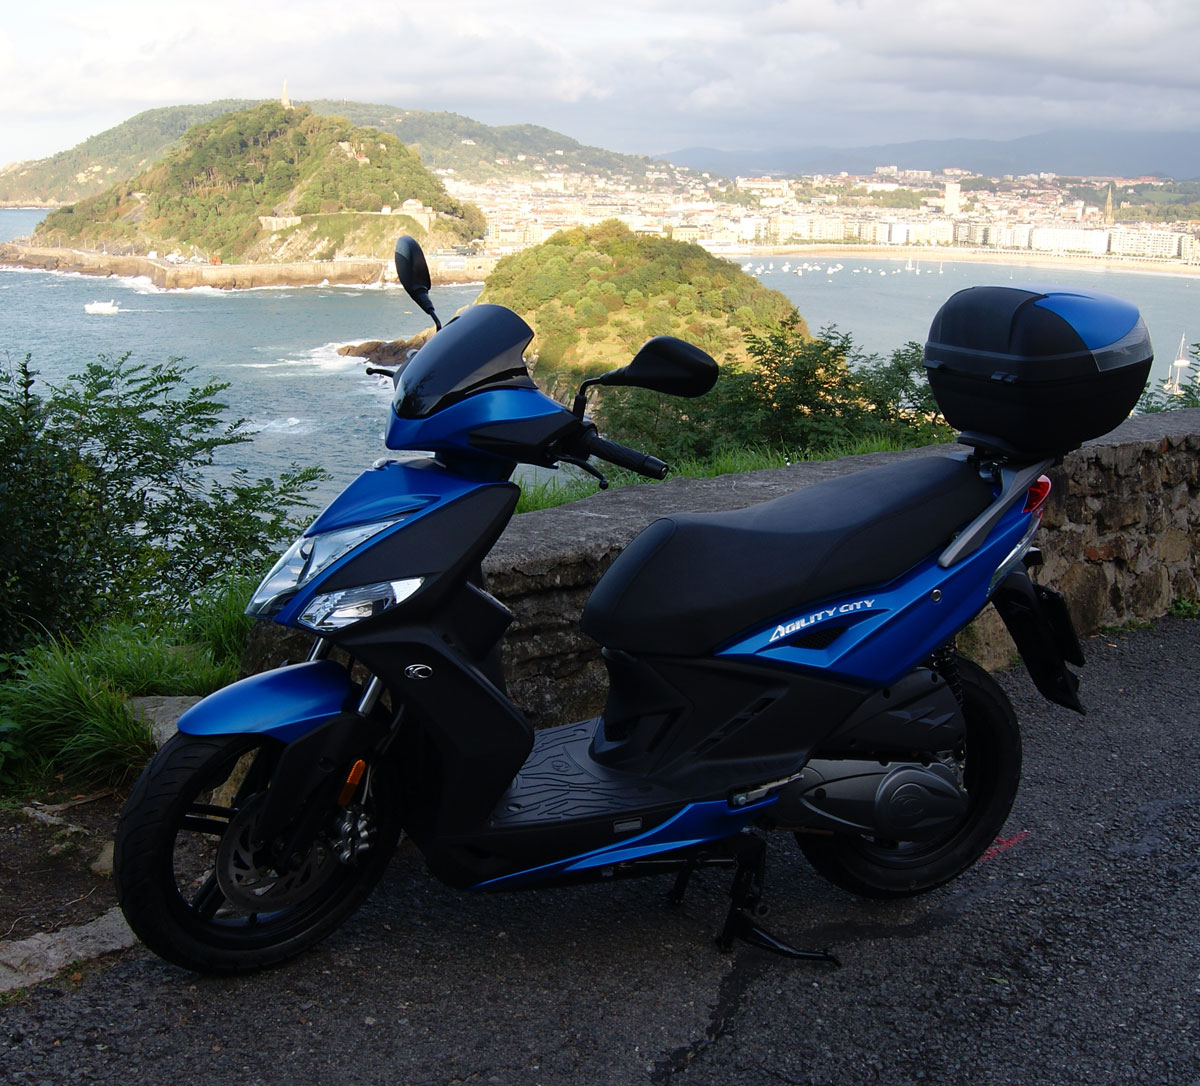 Rental scooter  Kymco Agility City 125 cc